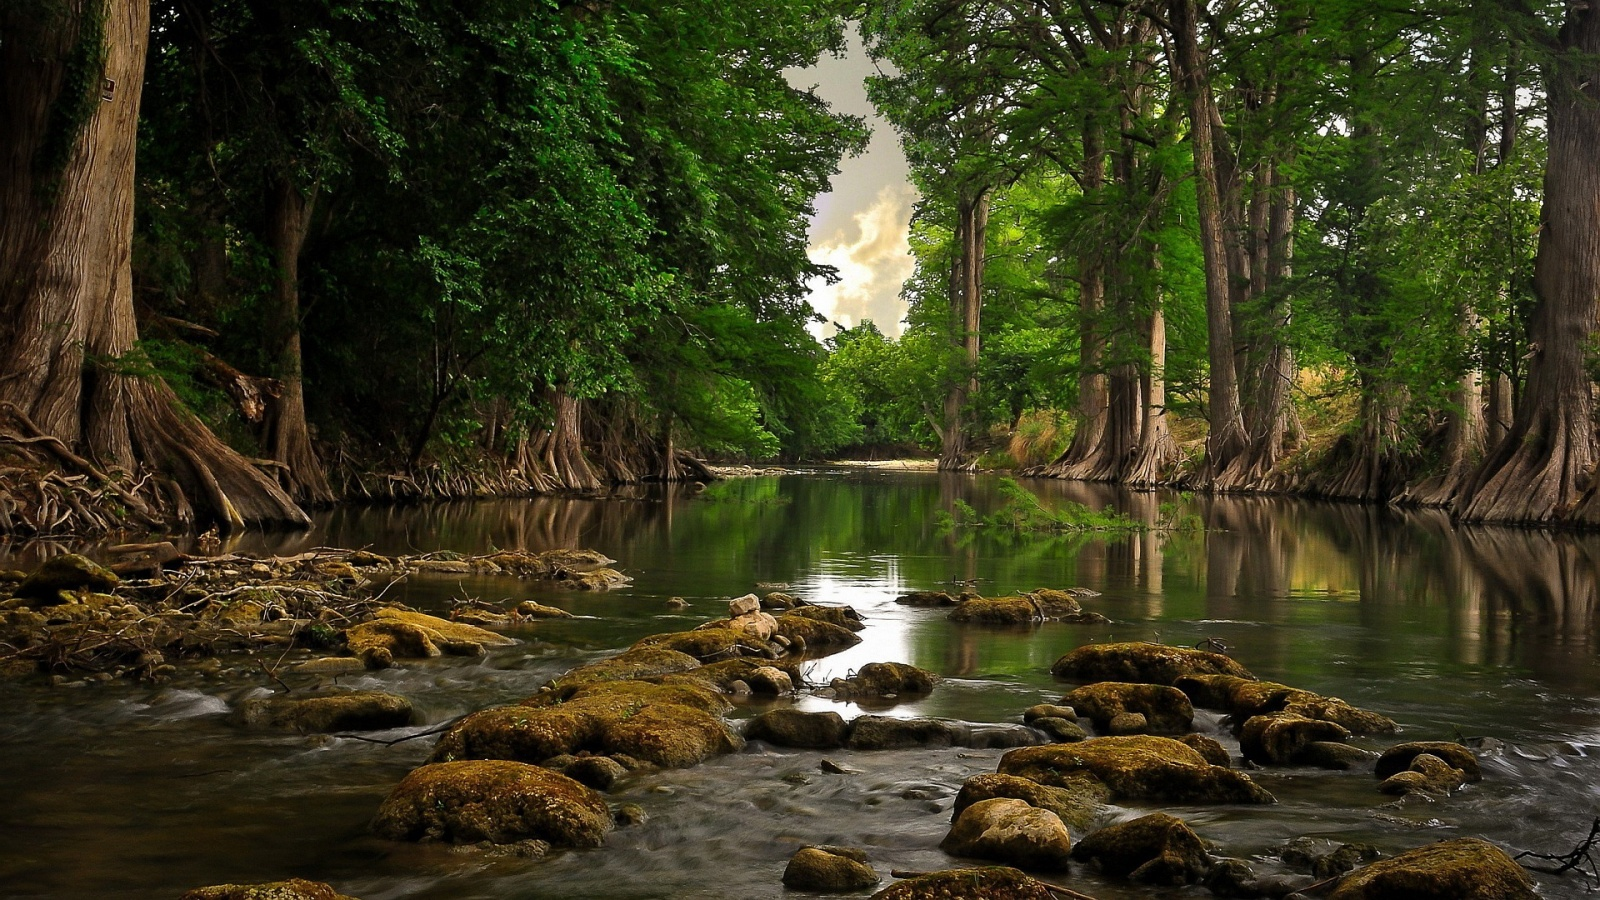 Download nature hd wallpapers 1600x900 gallery - Wallpapers 1600x900 ...